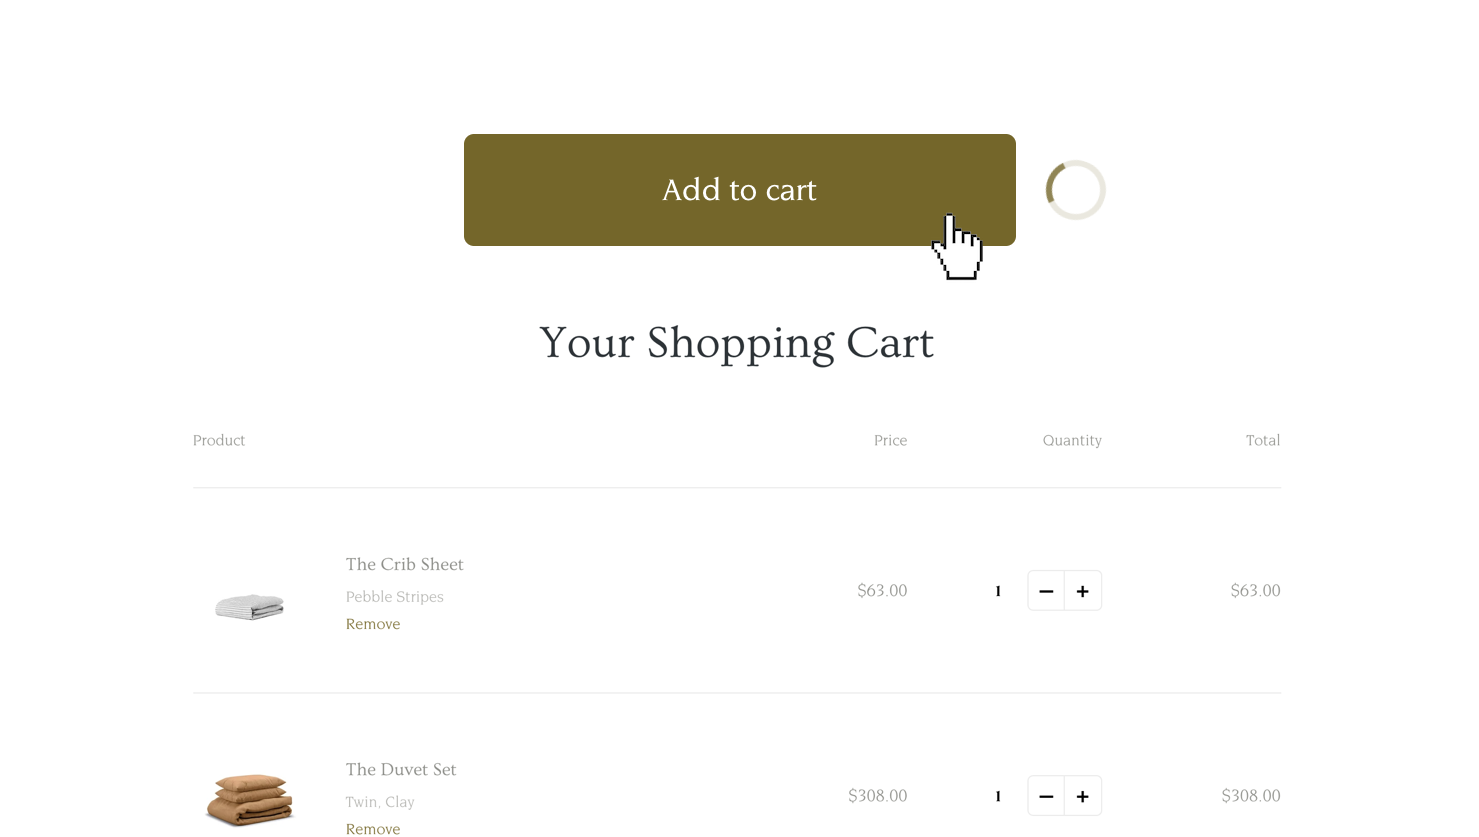 add_to_cart_button_sending_customer_to_cart_when_clicked.png